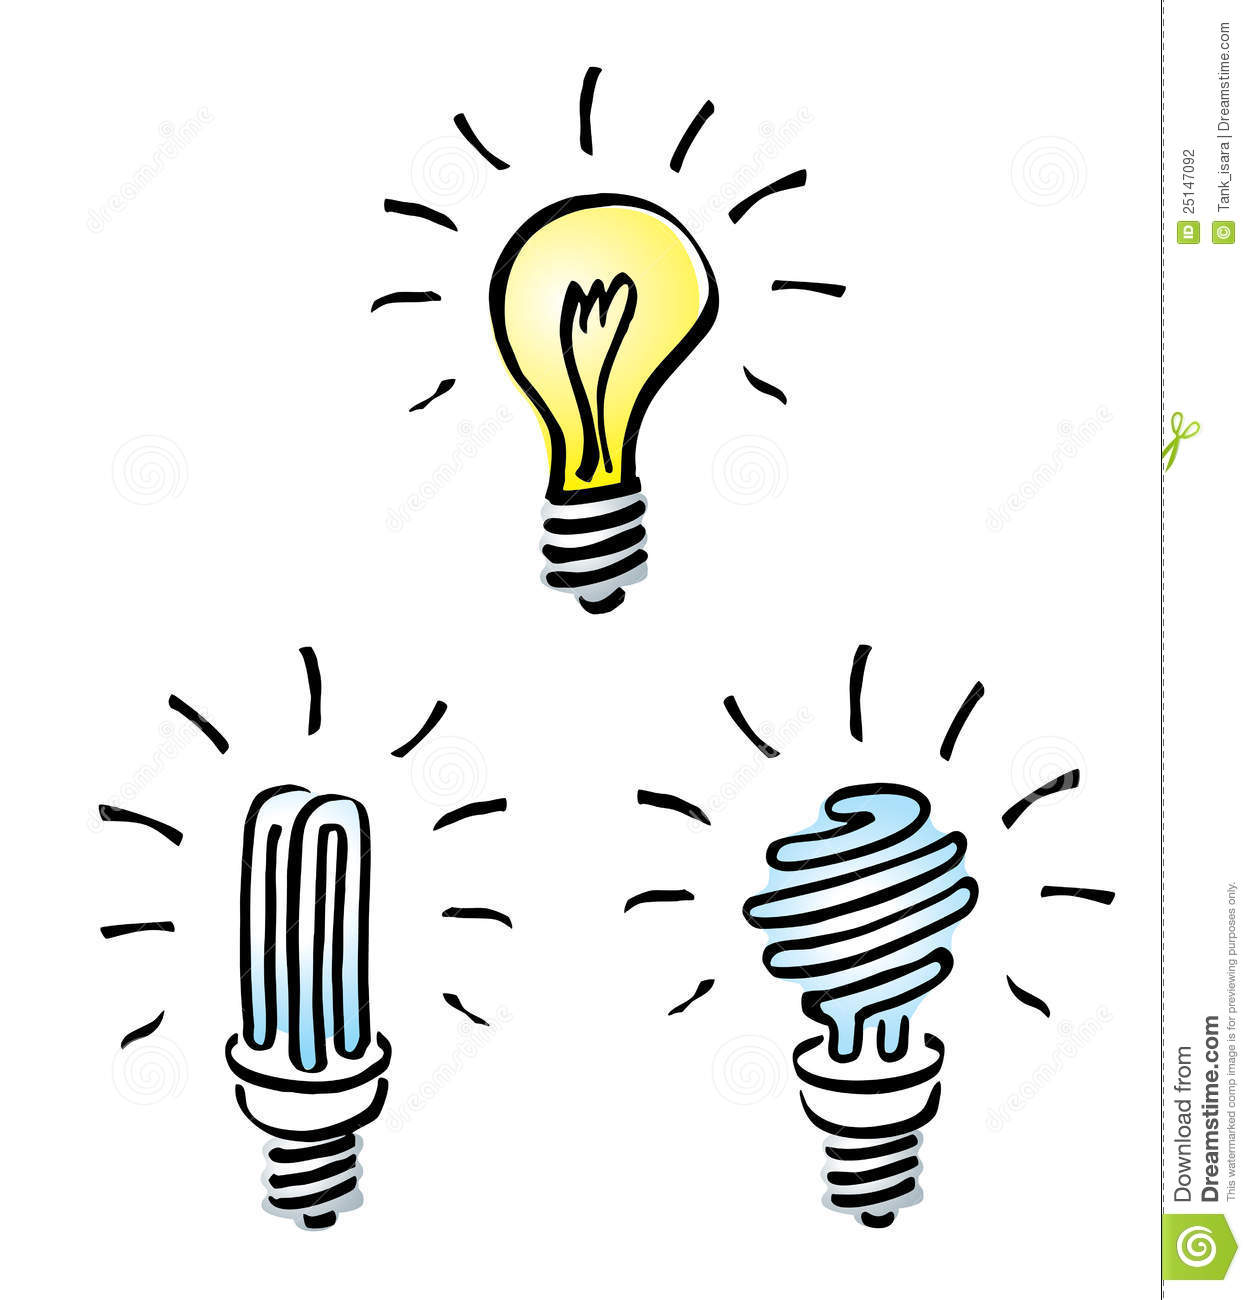 Energy saving light bulbs clipart.